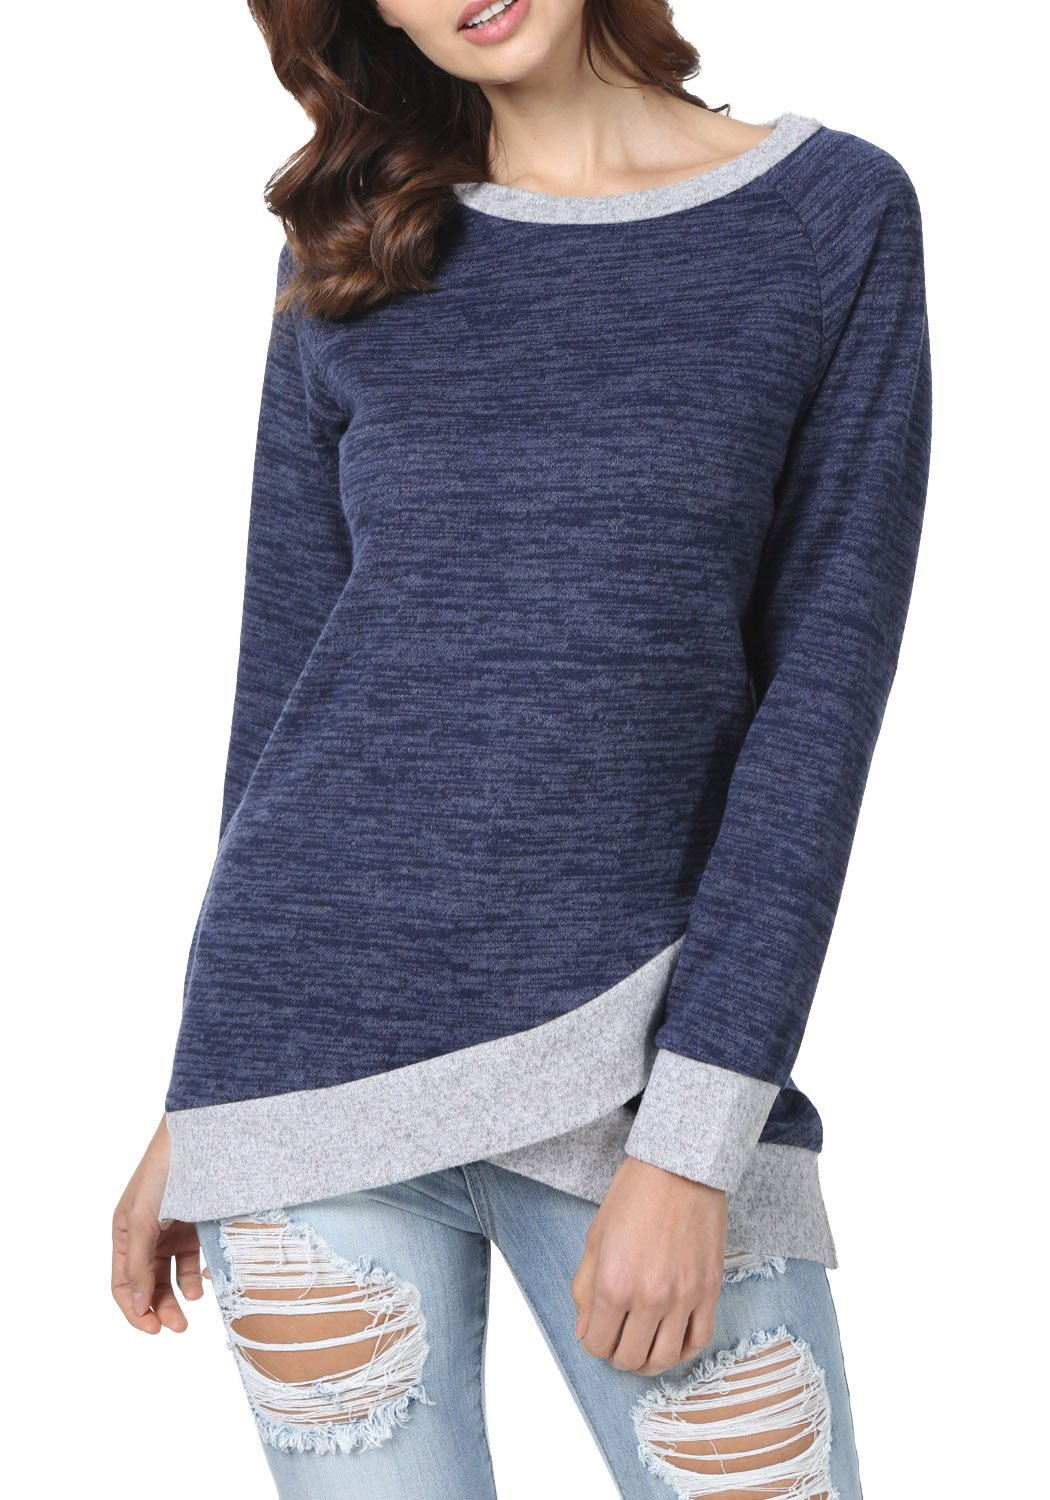 levaca Womens Long Sleeve O Neck Cross Loose Fit Casual Blouse Tunic Tops Blue M by levaca (Image #2)